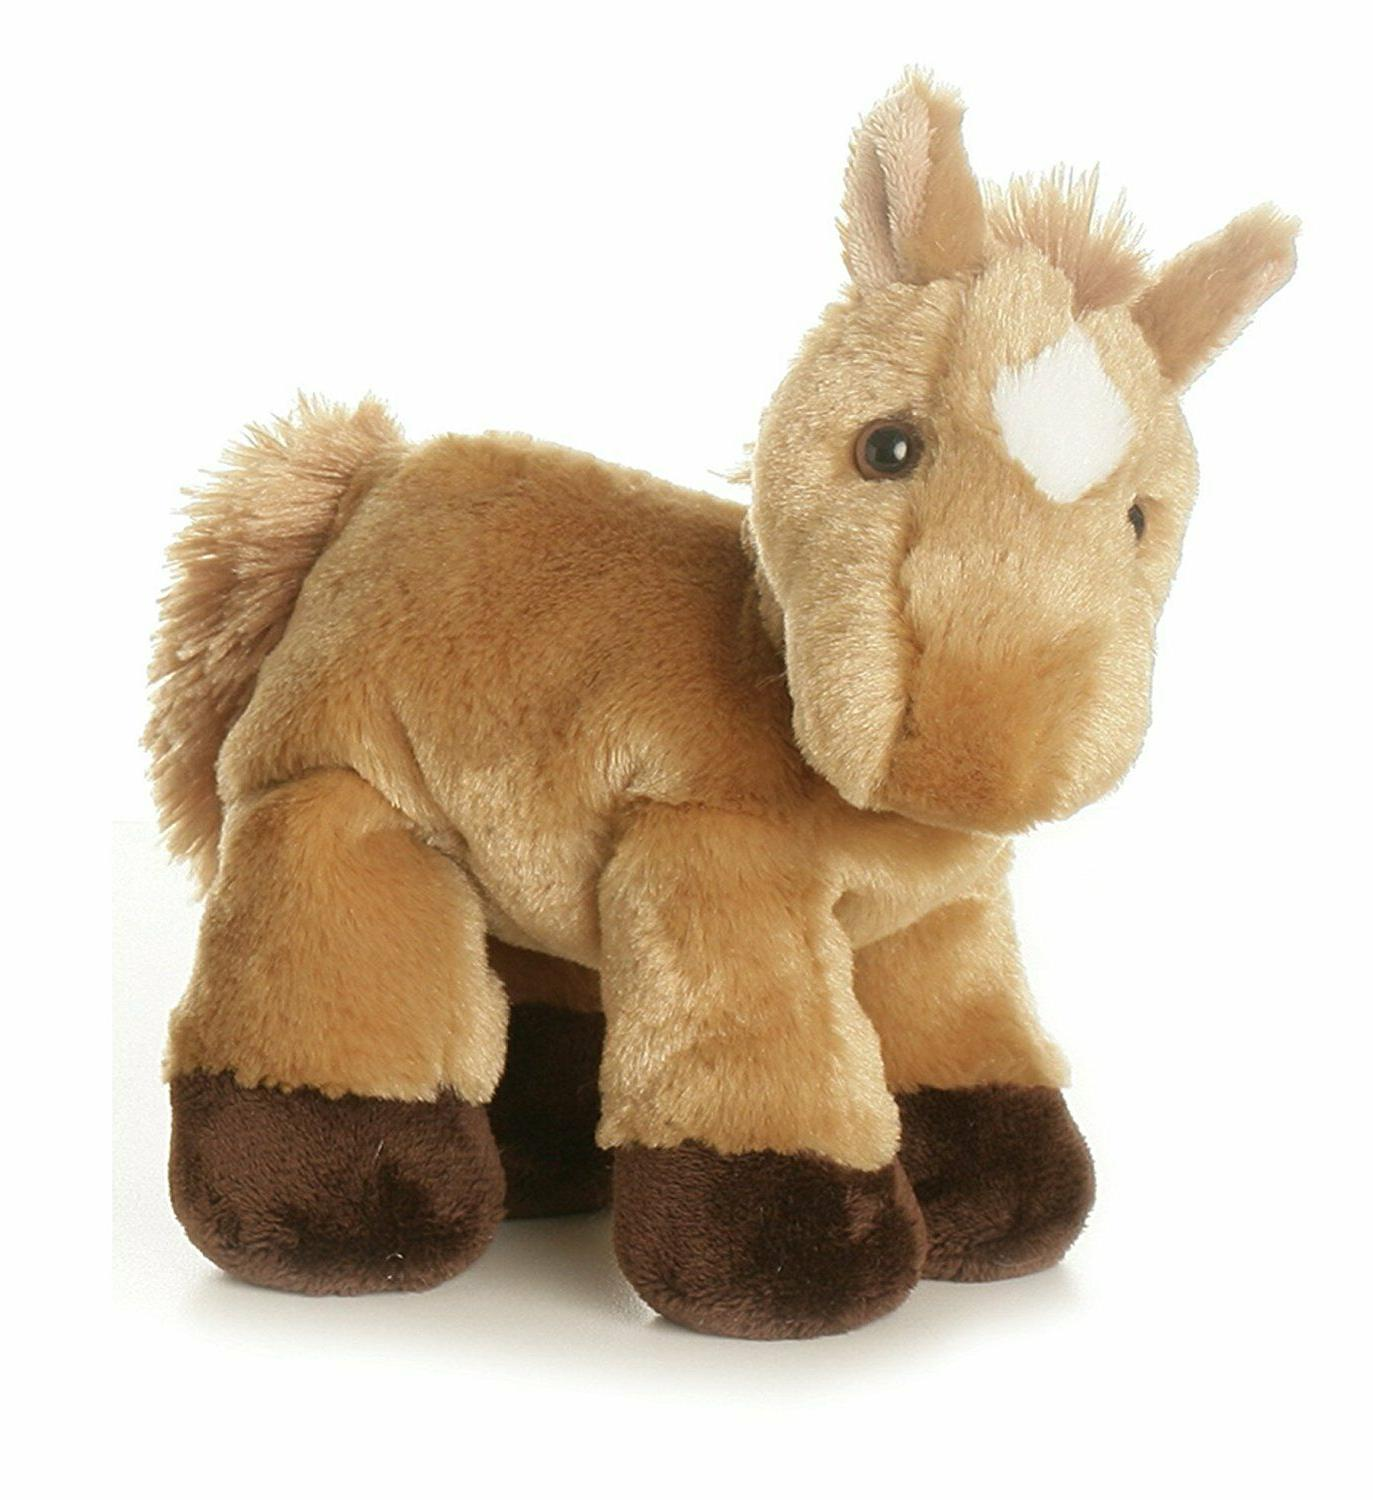 8 Mini Horse Animal by Certificate